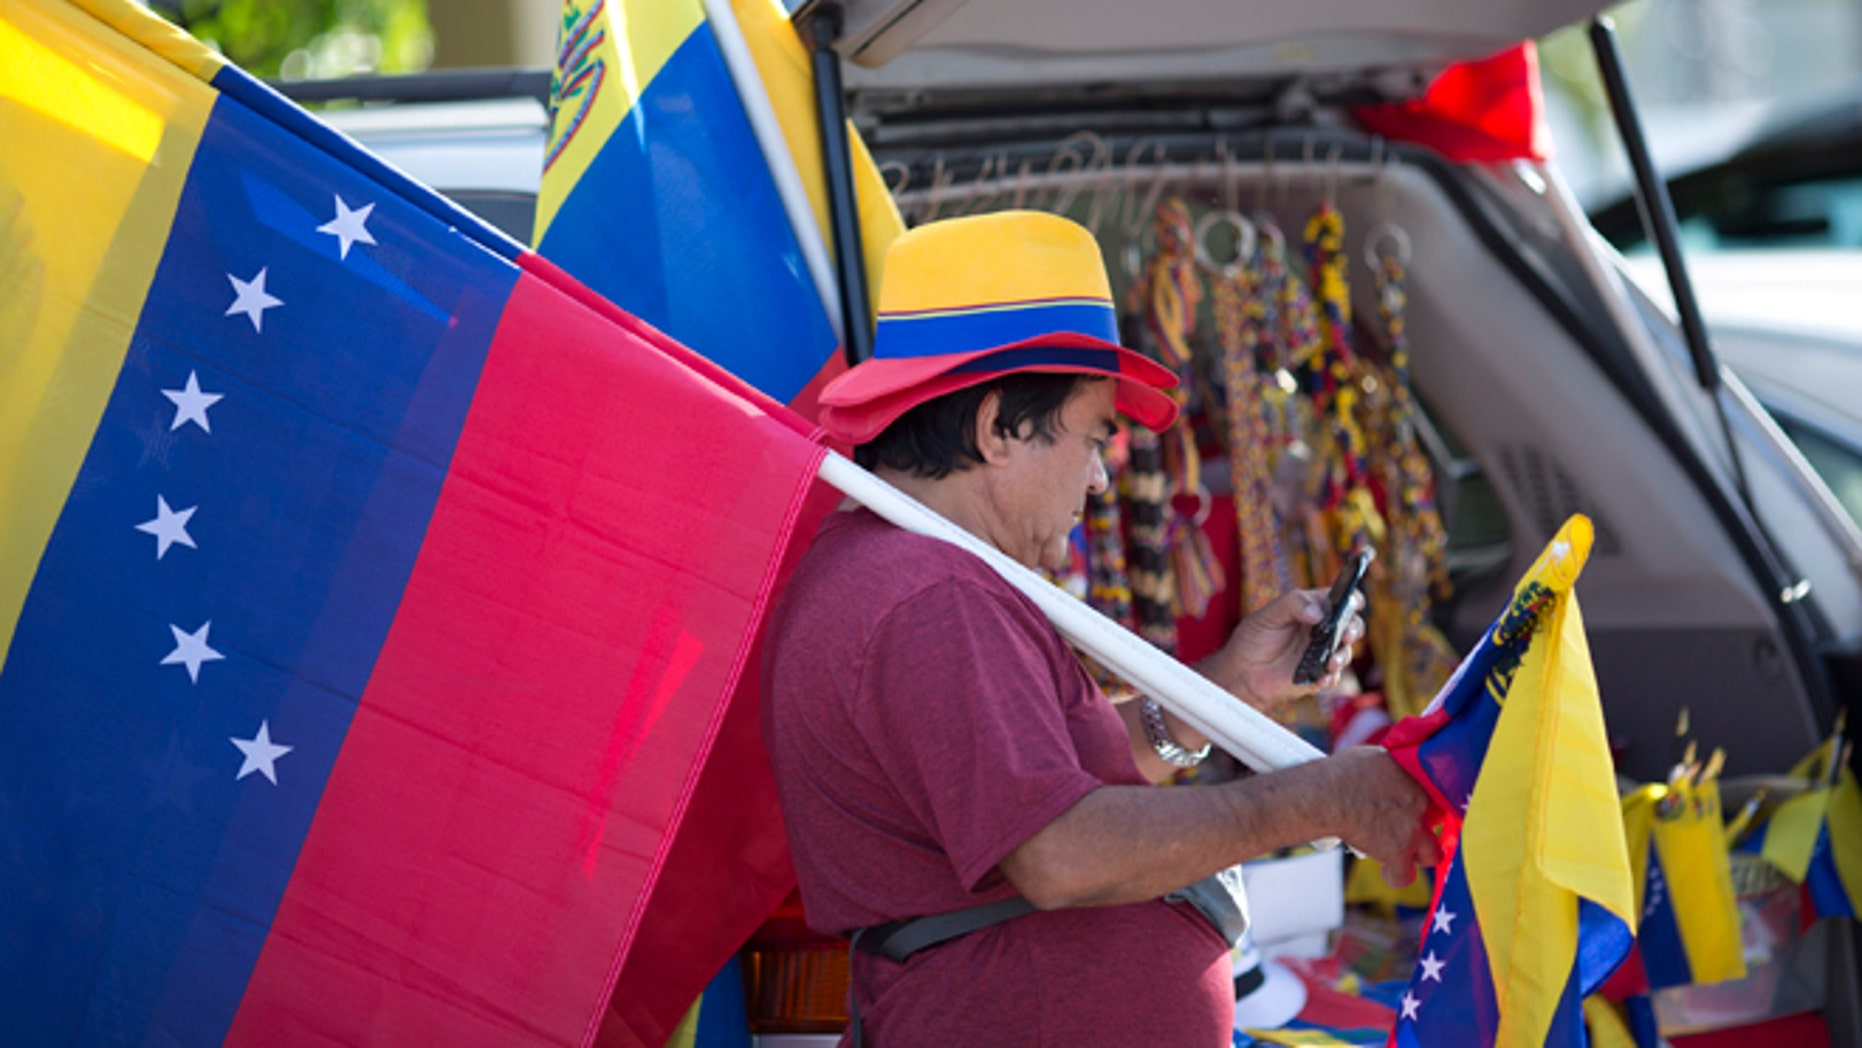 Xidmara Landaeta carries his country's flag, offering them for sale, as Venezuelans from South Florida prepare for their bus trip to Washington, Thursday, May 8, 2014, in Doral, Fla. They are rallying to ask the Congress and President Barack Obama to impose economic sanctions and travel restrictions to the Venezuelan government officials because of presumed human right violations in the South American country. Organizers said they expect Venezuelans from 19 states will meet in Washington on Friday to demonstrate in front of the White House, Congress and the Organization of American States.  (AP Photo/J Pat Carter)